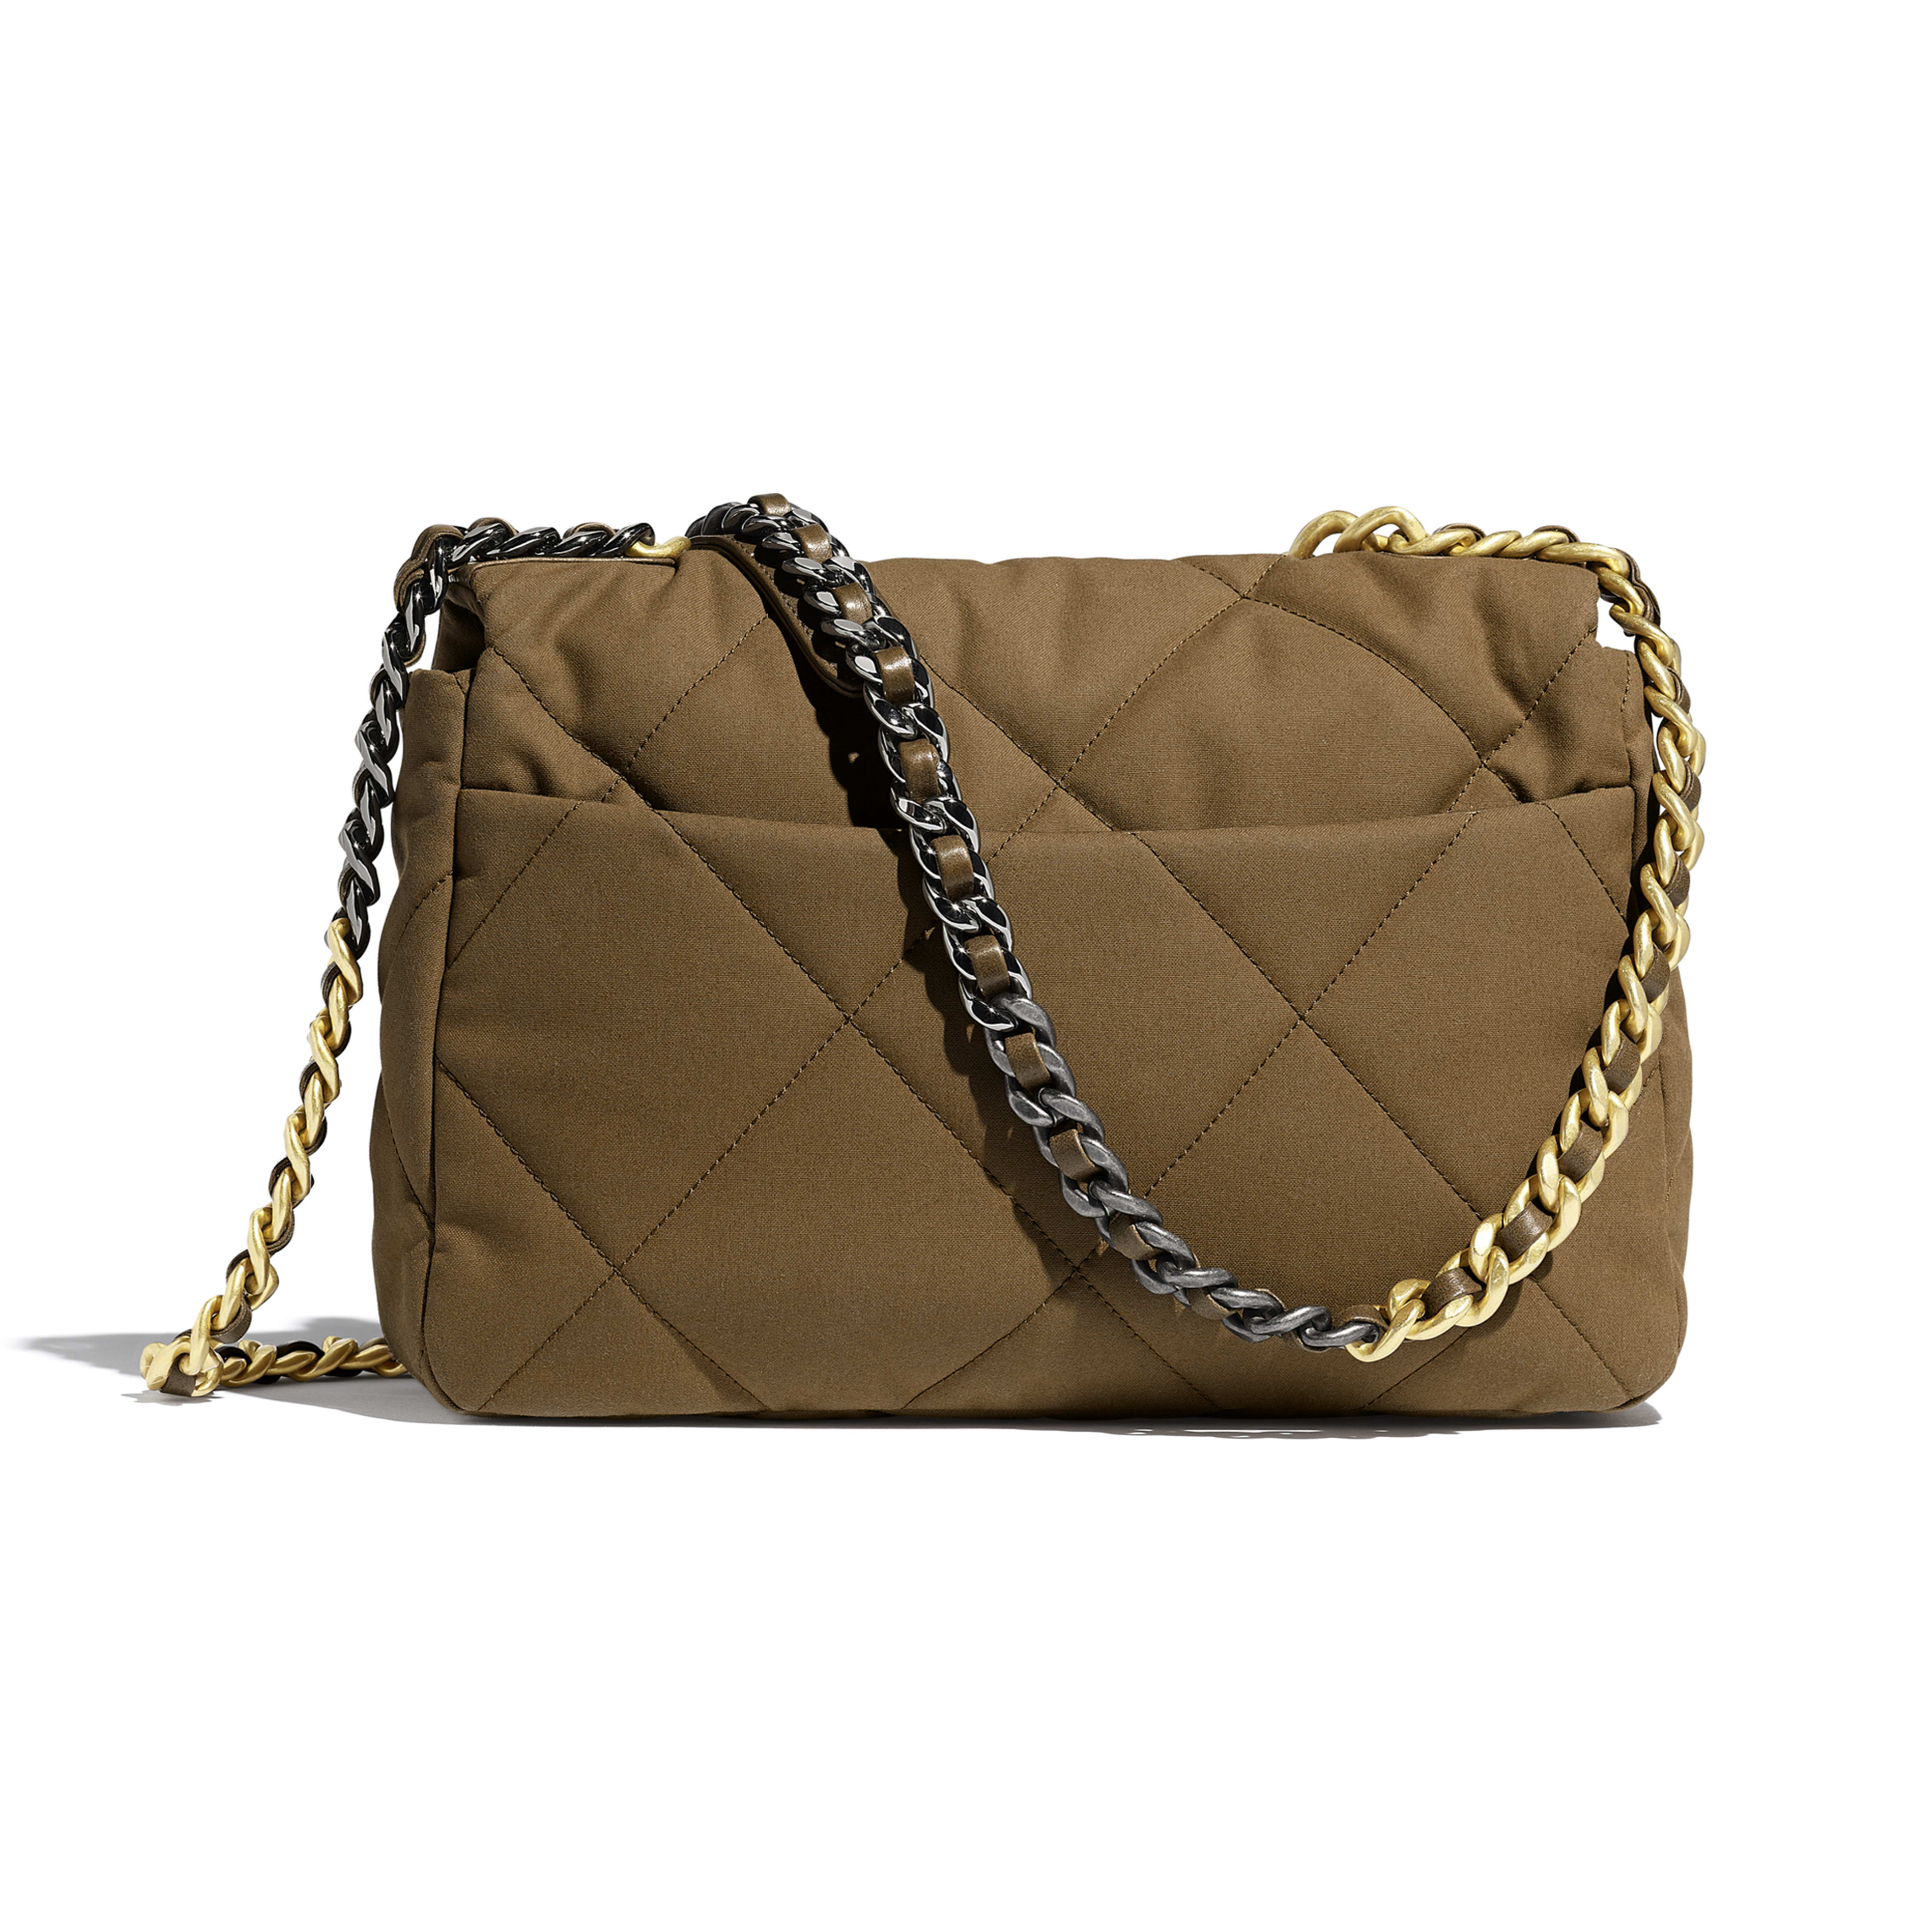 CHANEL 19 Large Flap Bag - Bronze - Cotton Canvas, Calfskin, Gold-Tone, Silver-Tone & Ruthenium-Finish Metal - Alternative view - see full sized version